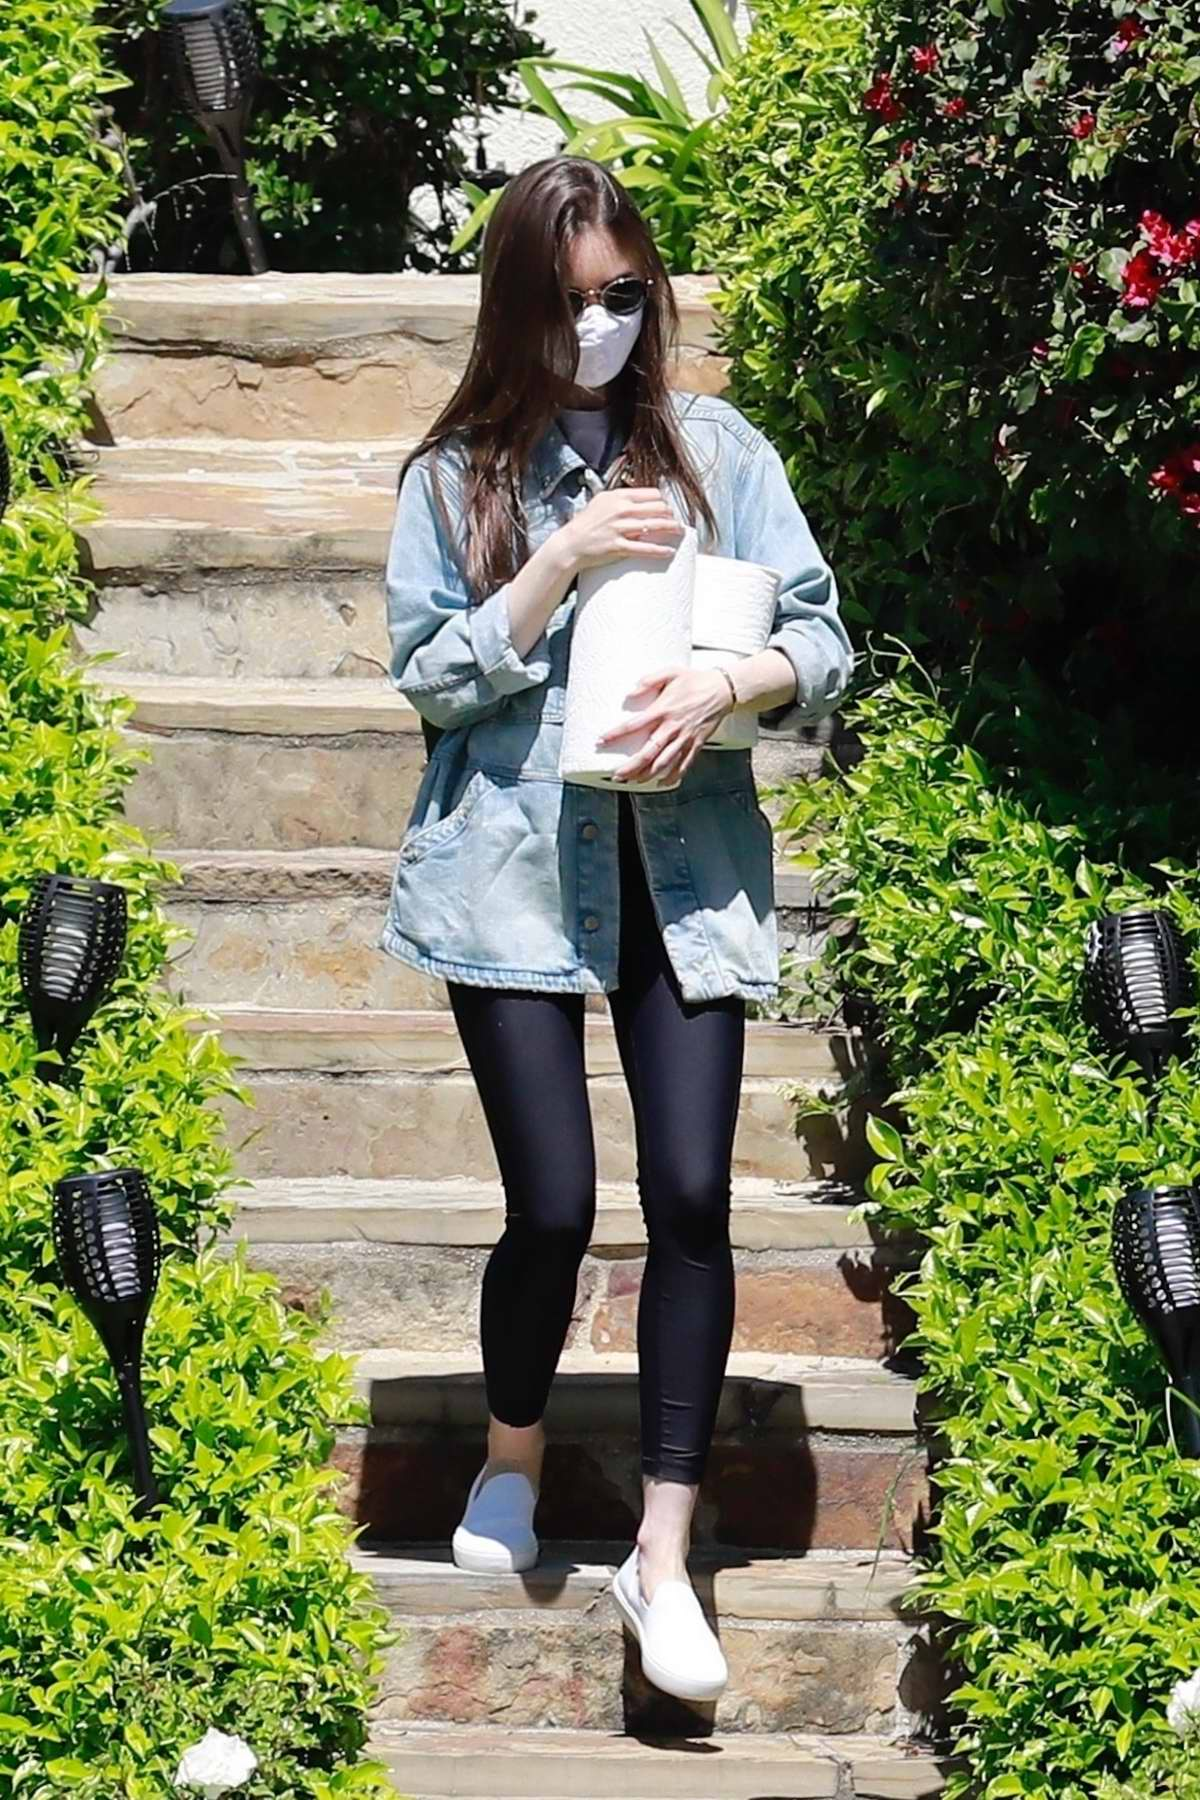 Lily Collins picks up some toilet paper rolls while visiting a family member in Los Angeles